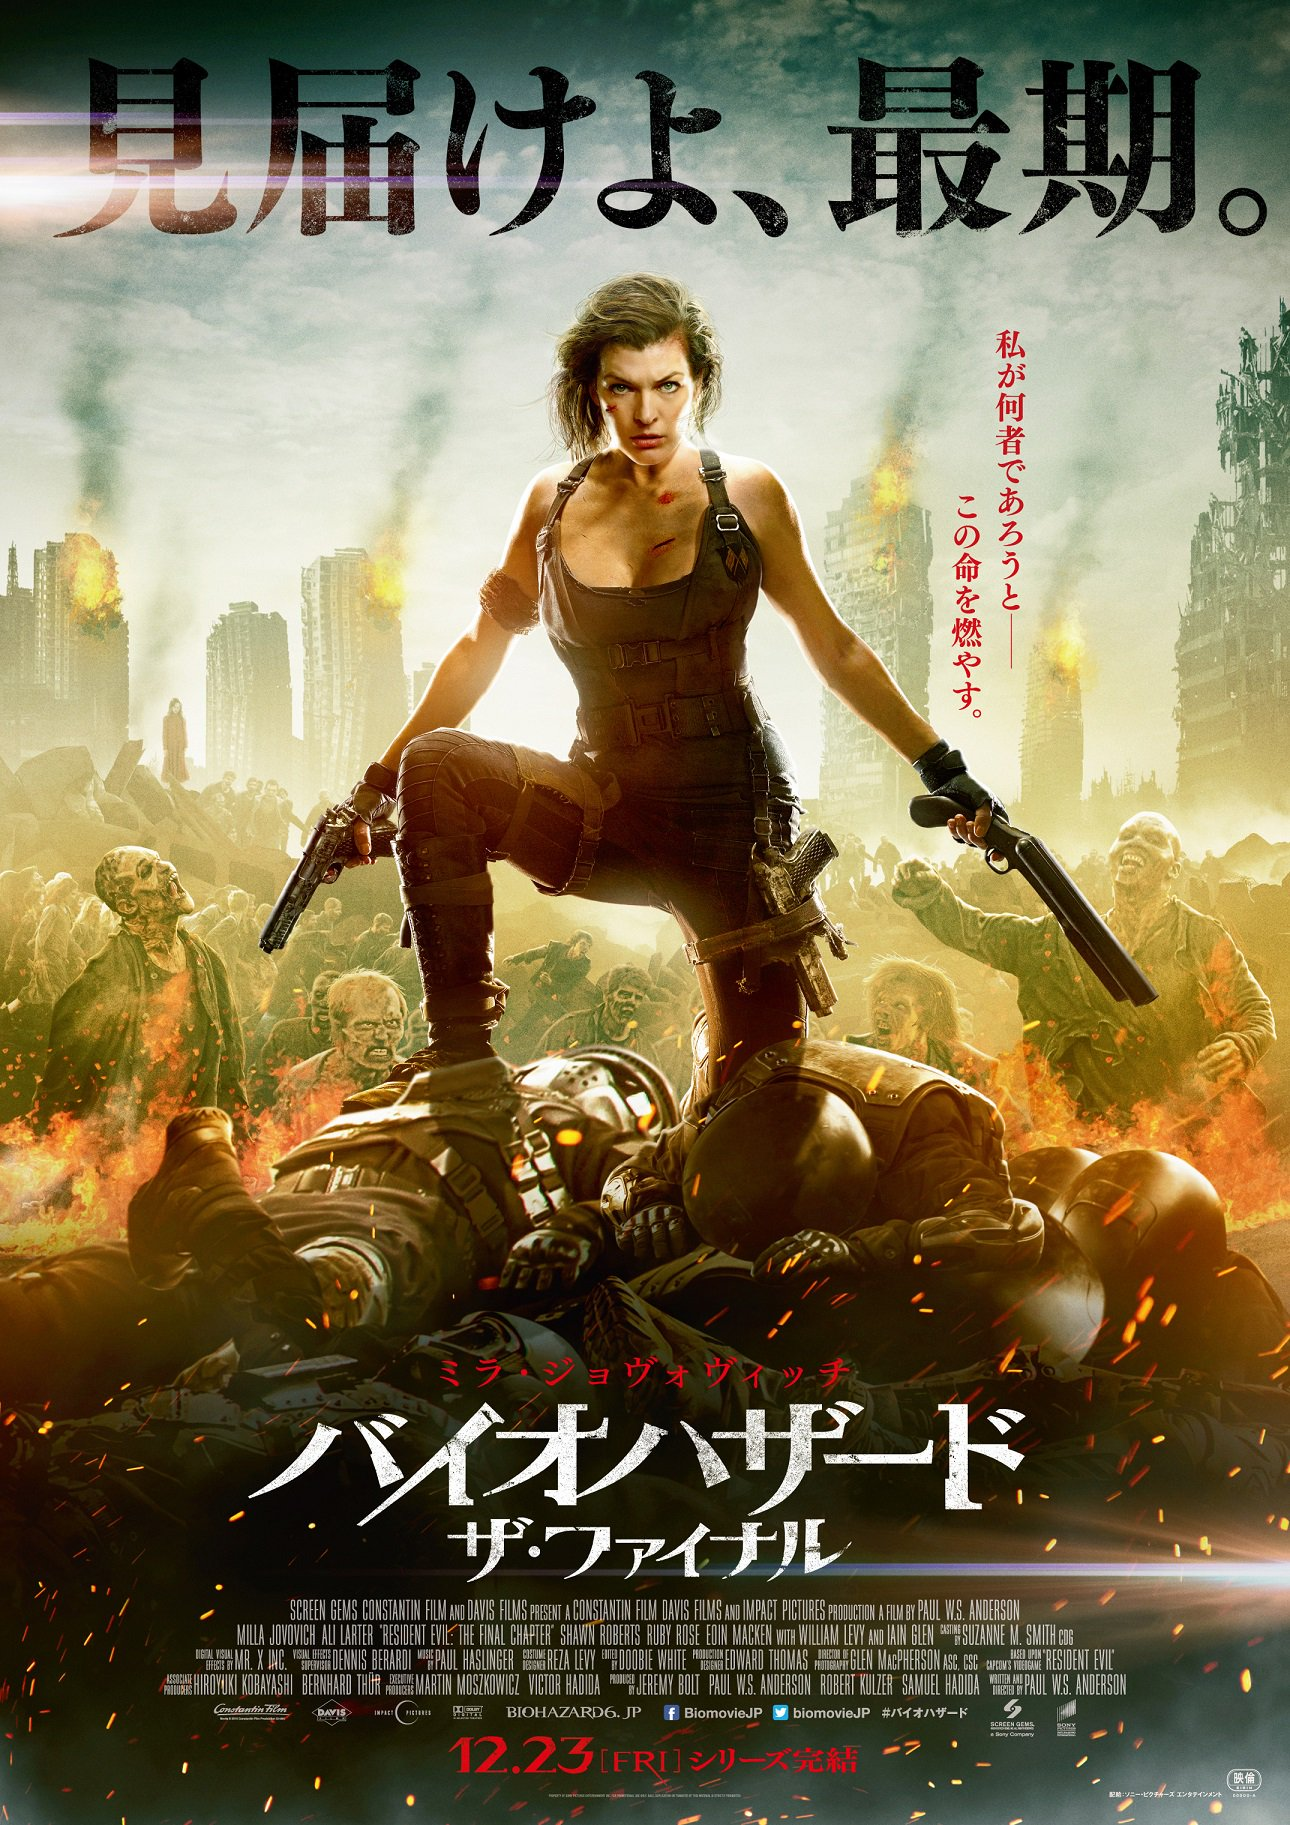 Alice Strikes A Badass Pose On New Resident Evil: The Final Chapter Posters